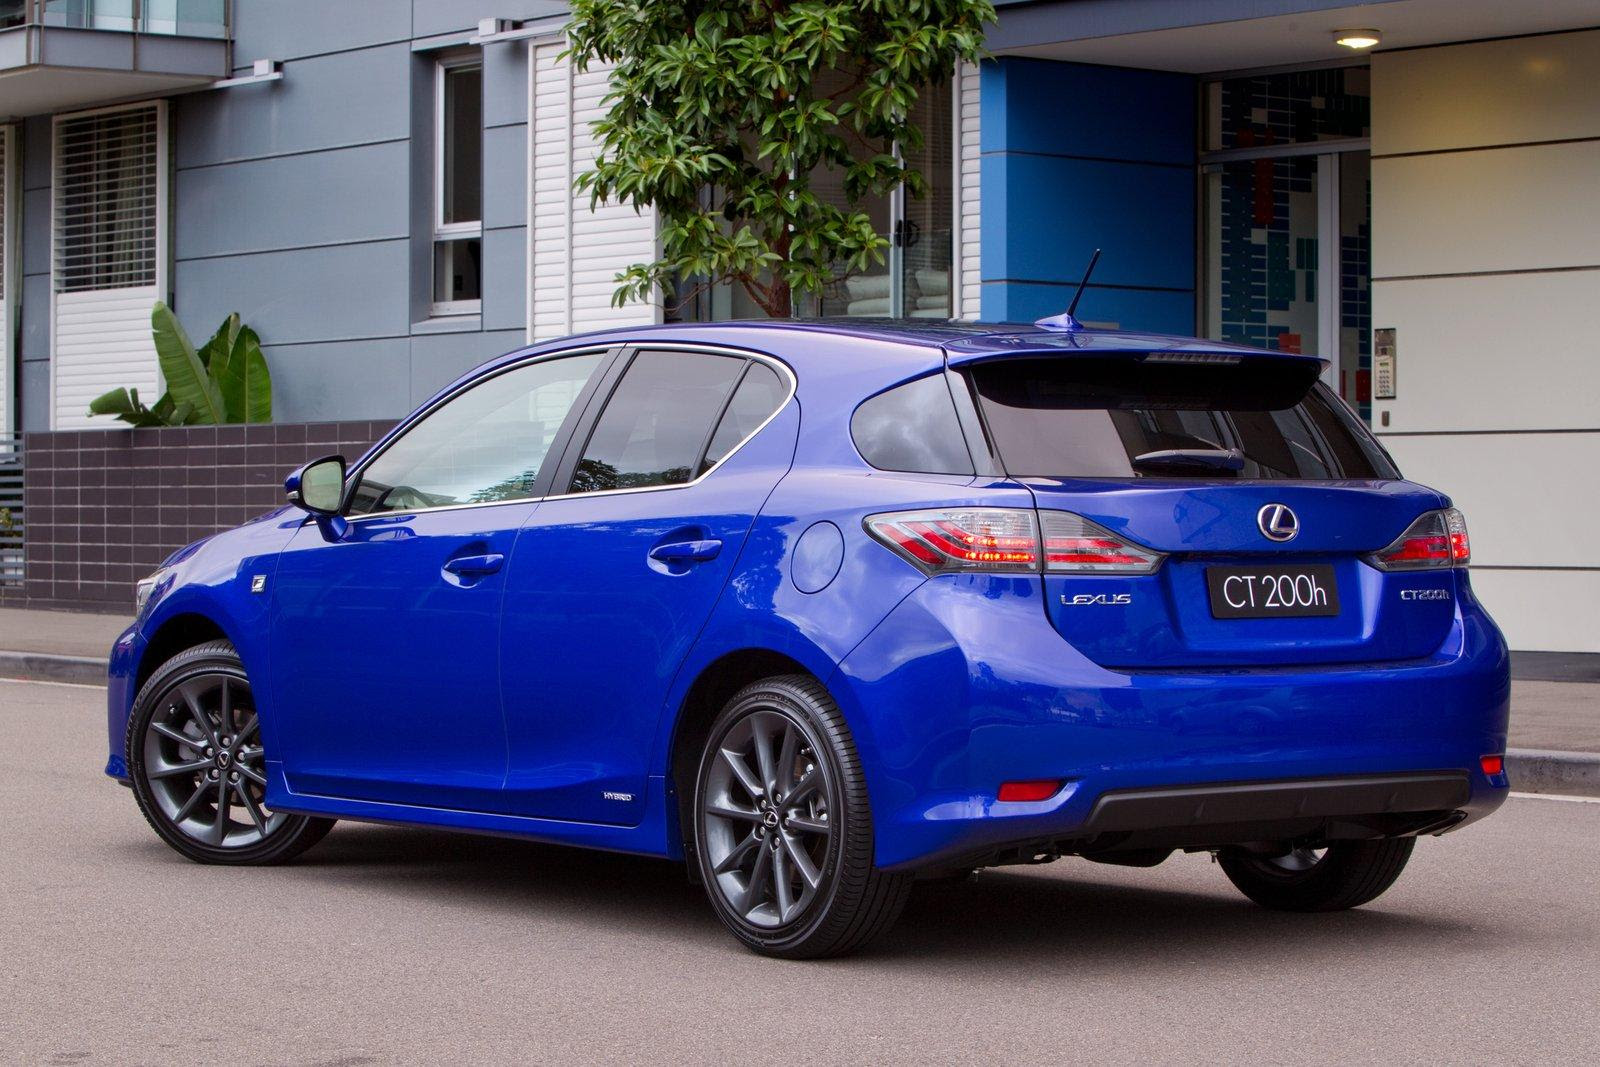 new lexus ct200h 2012 will have fsport package in the us